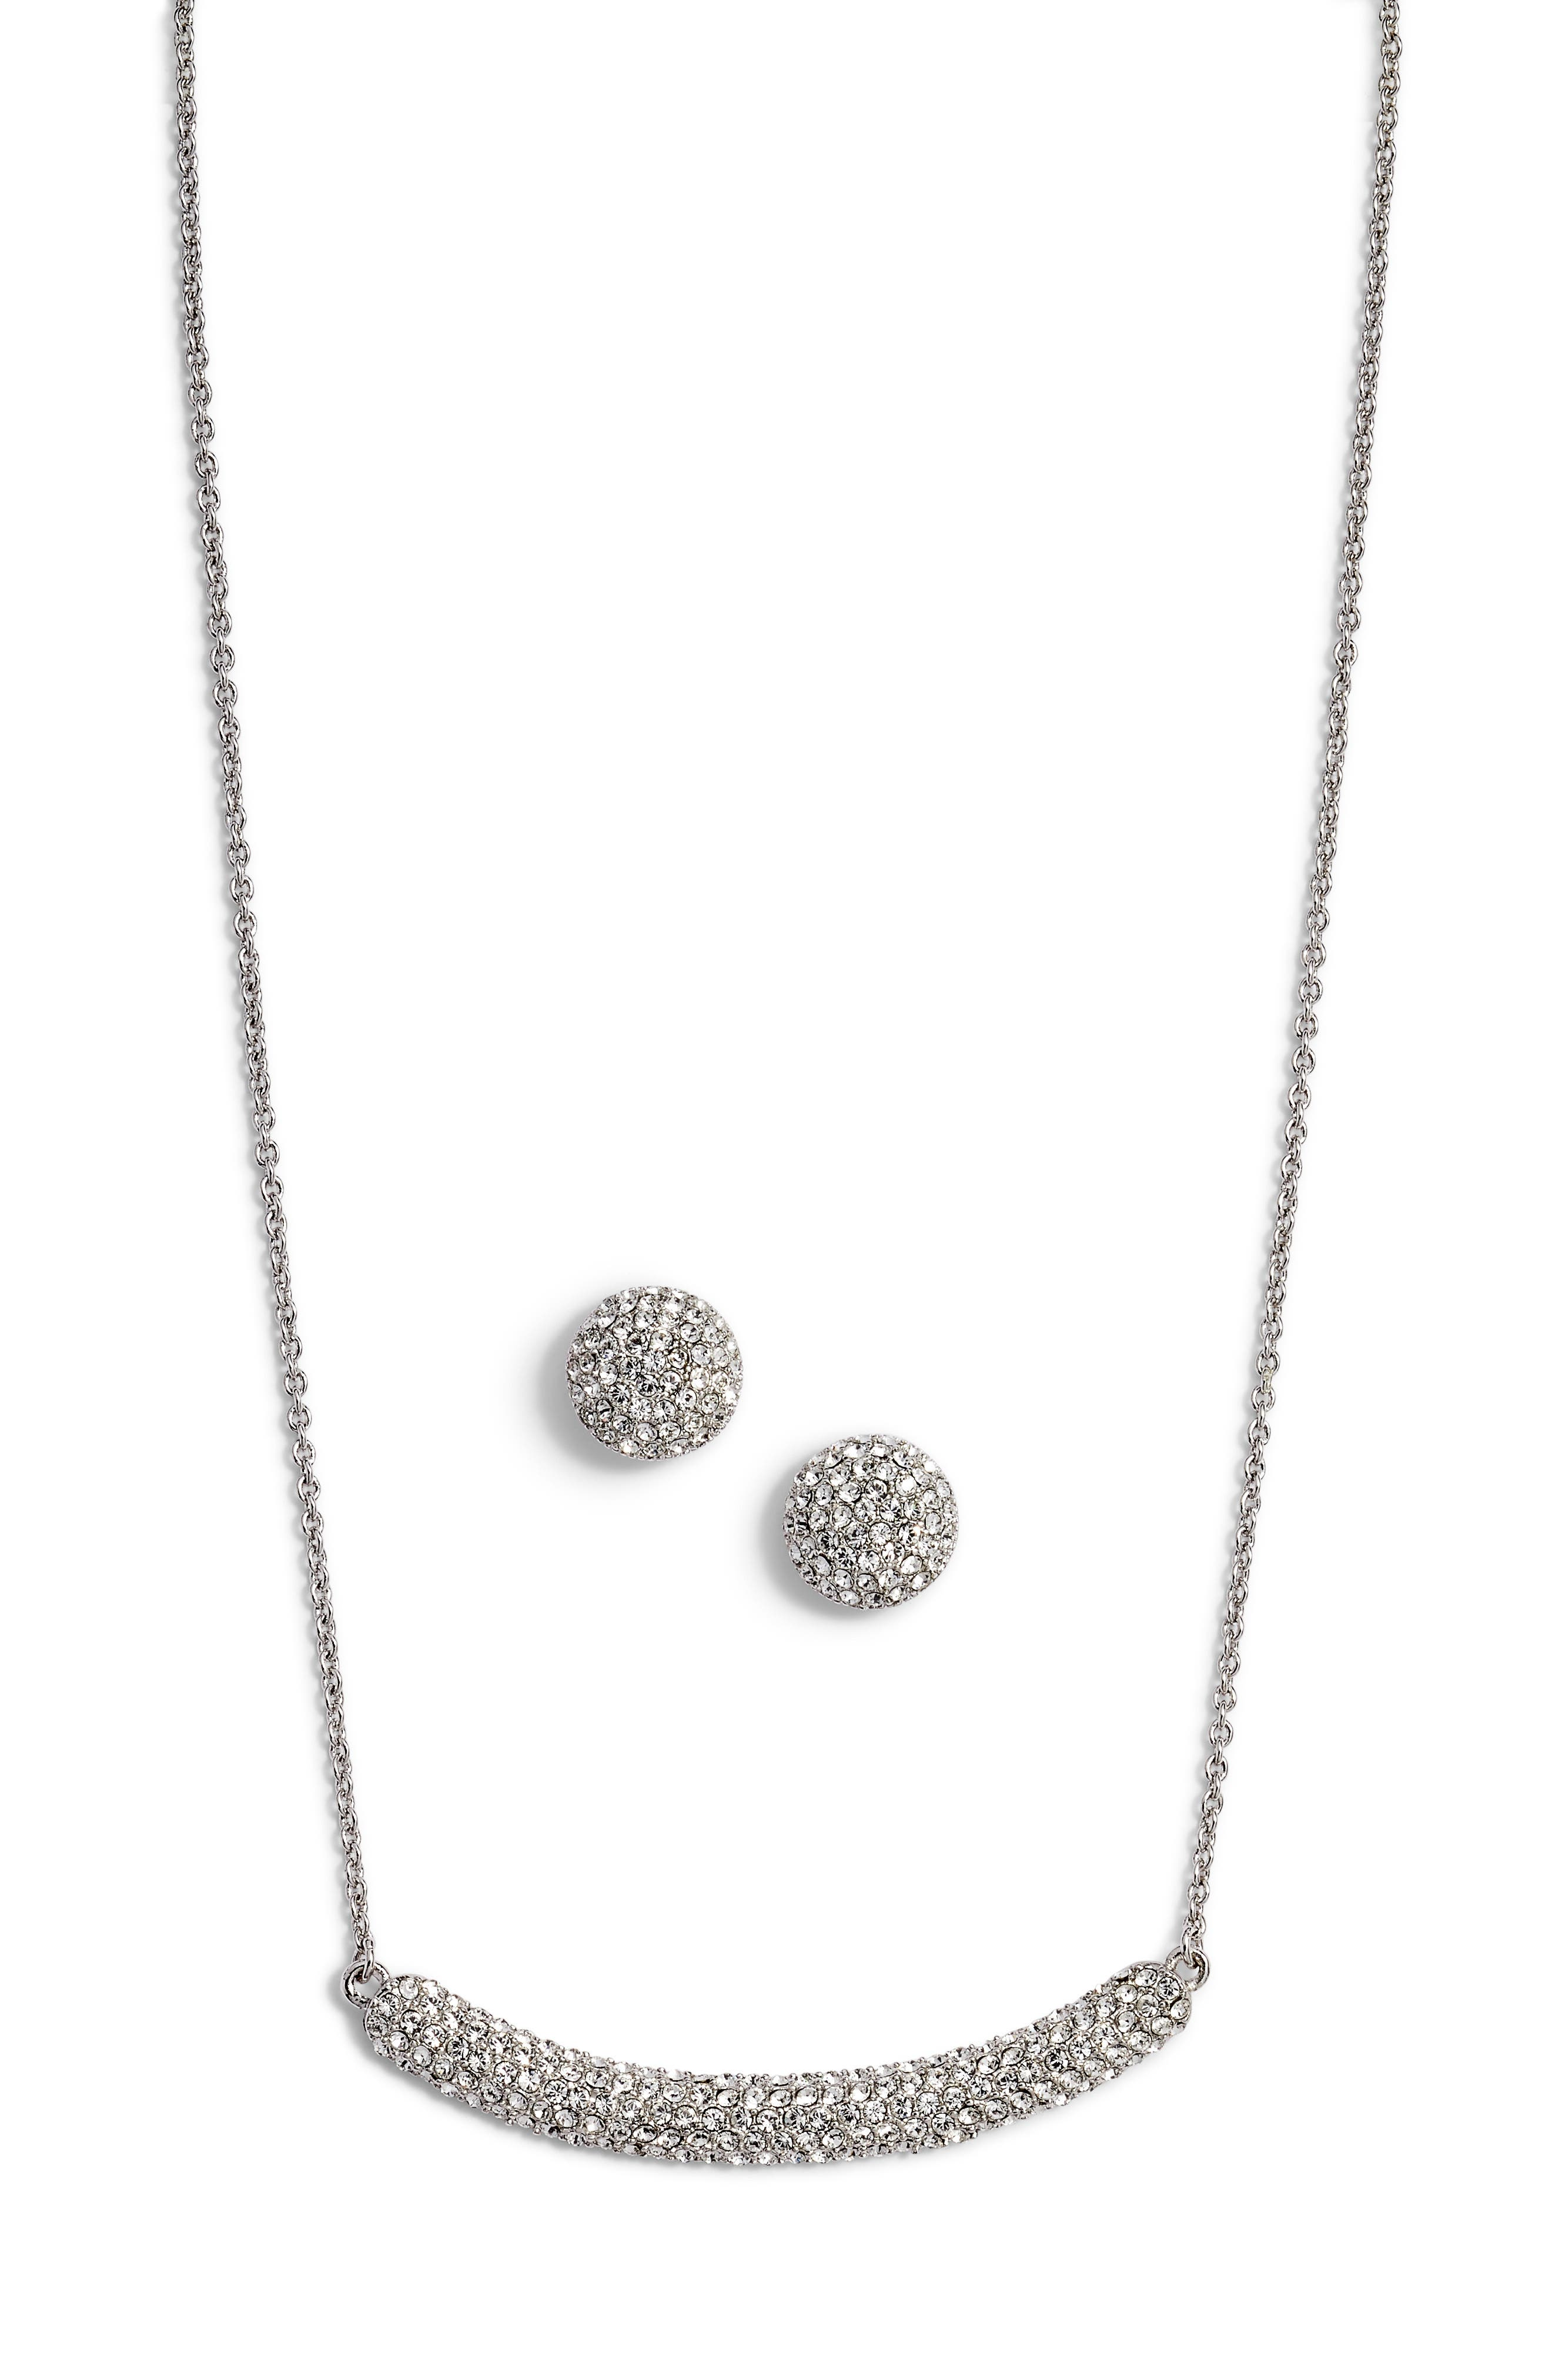 Pavé Swarovski Crystal Necklace & Stud Earrings Set,                         Main,                         color, WHITE/ SILVER